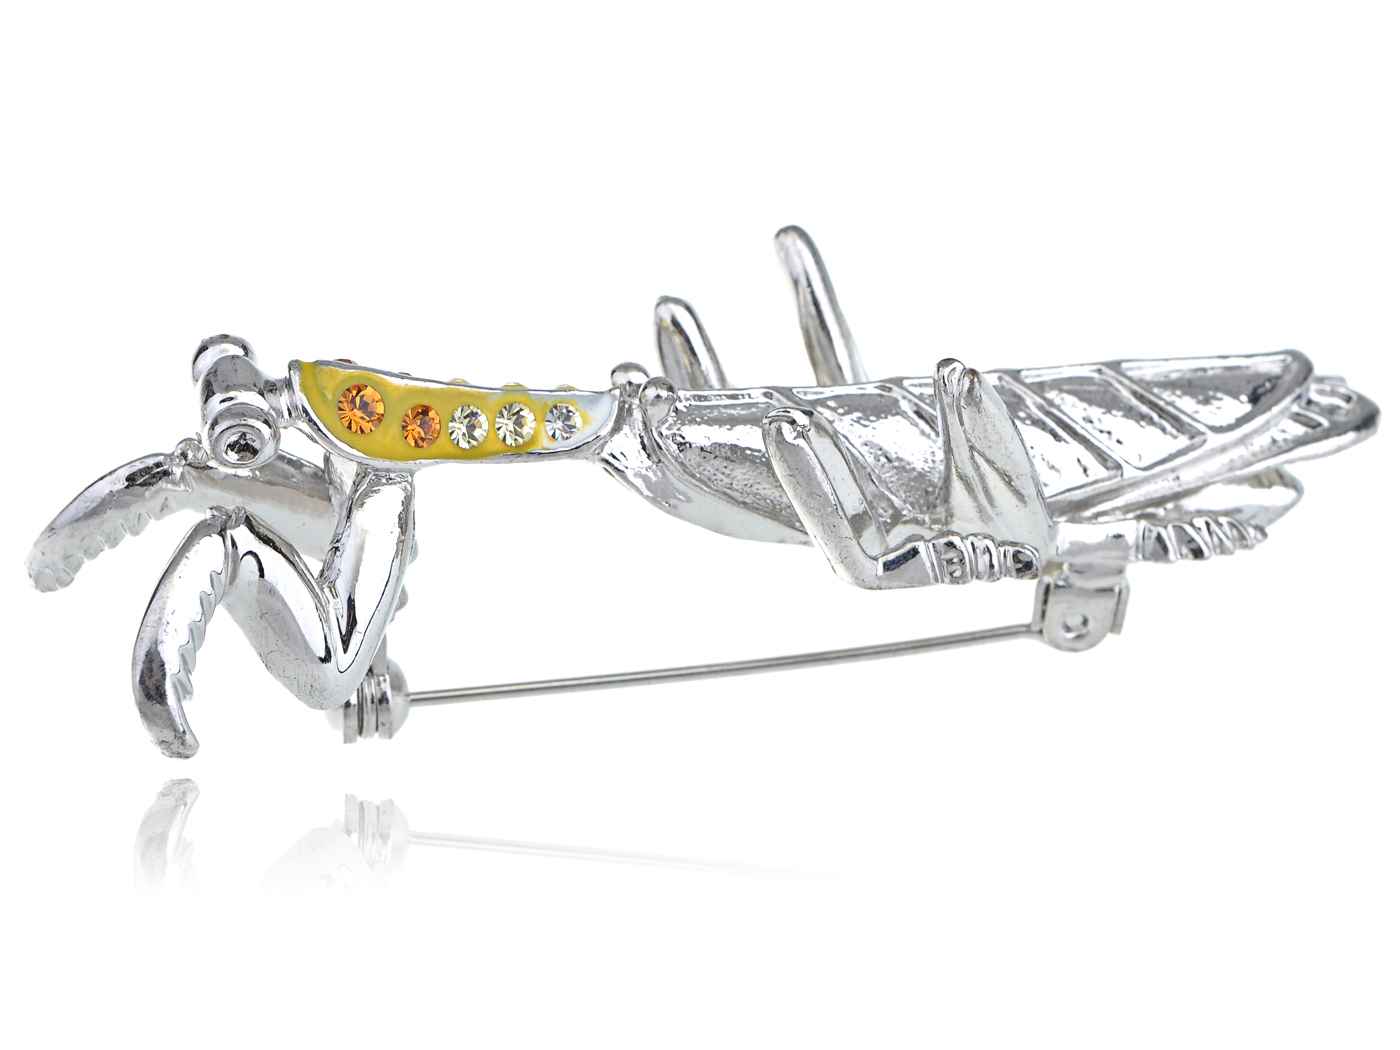 Topaz Crystal Rhinestone Yellow Neck Silver Tone Wing Mantis Insect Pin Broach by